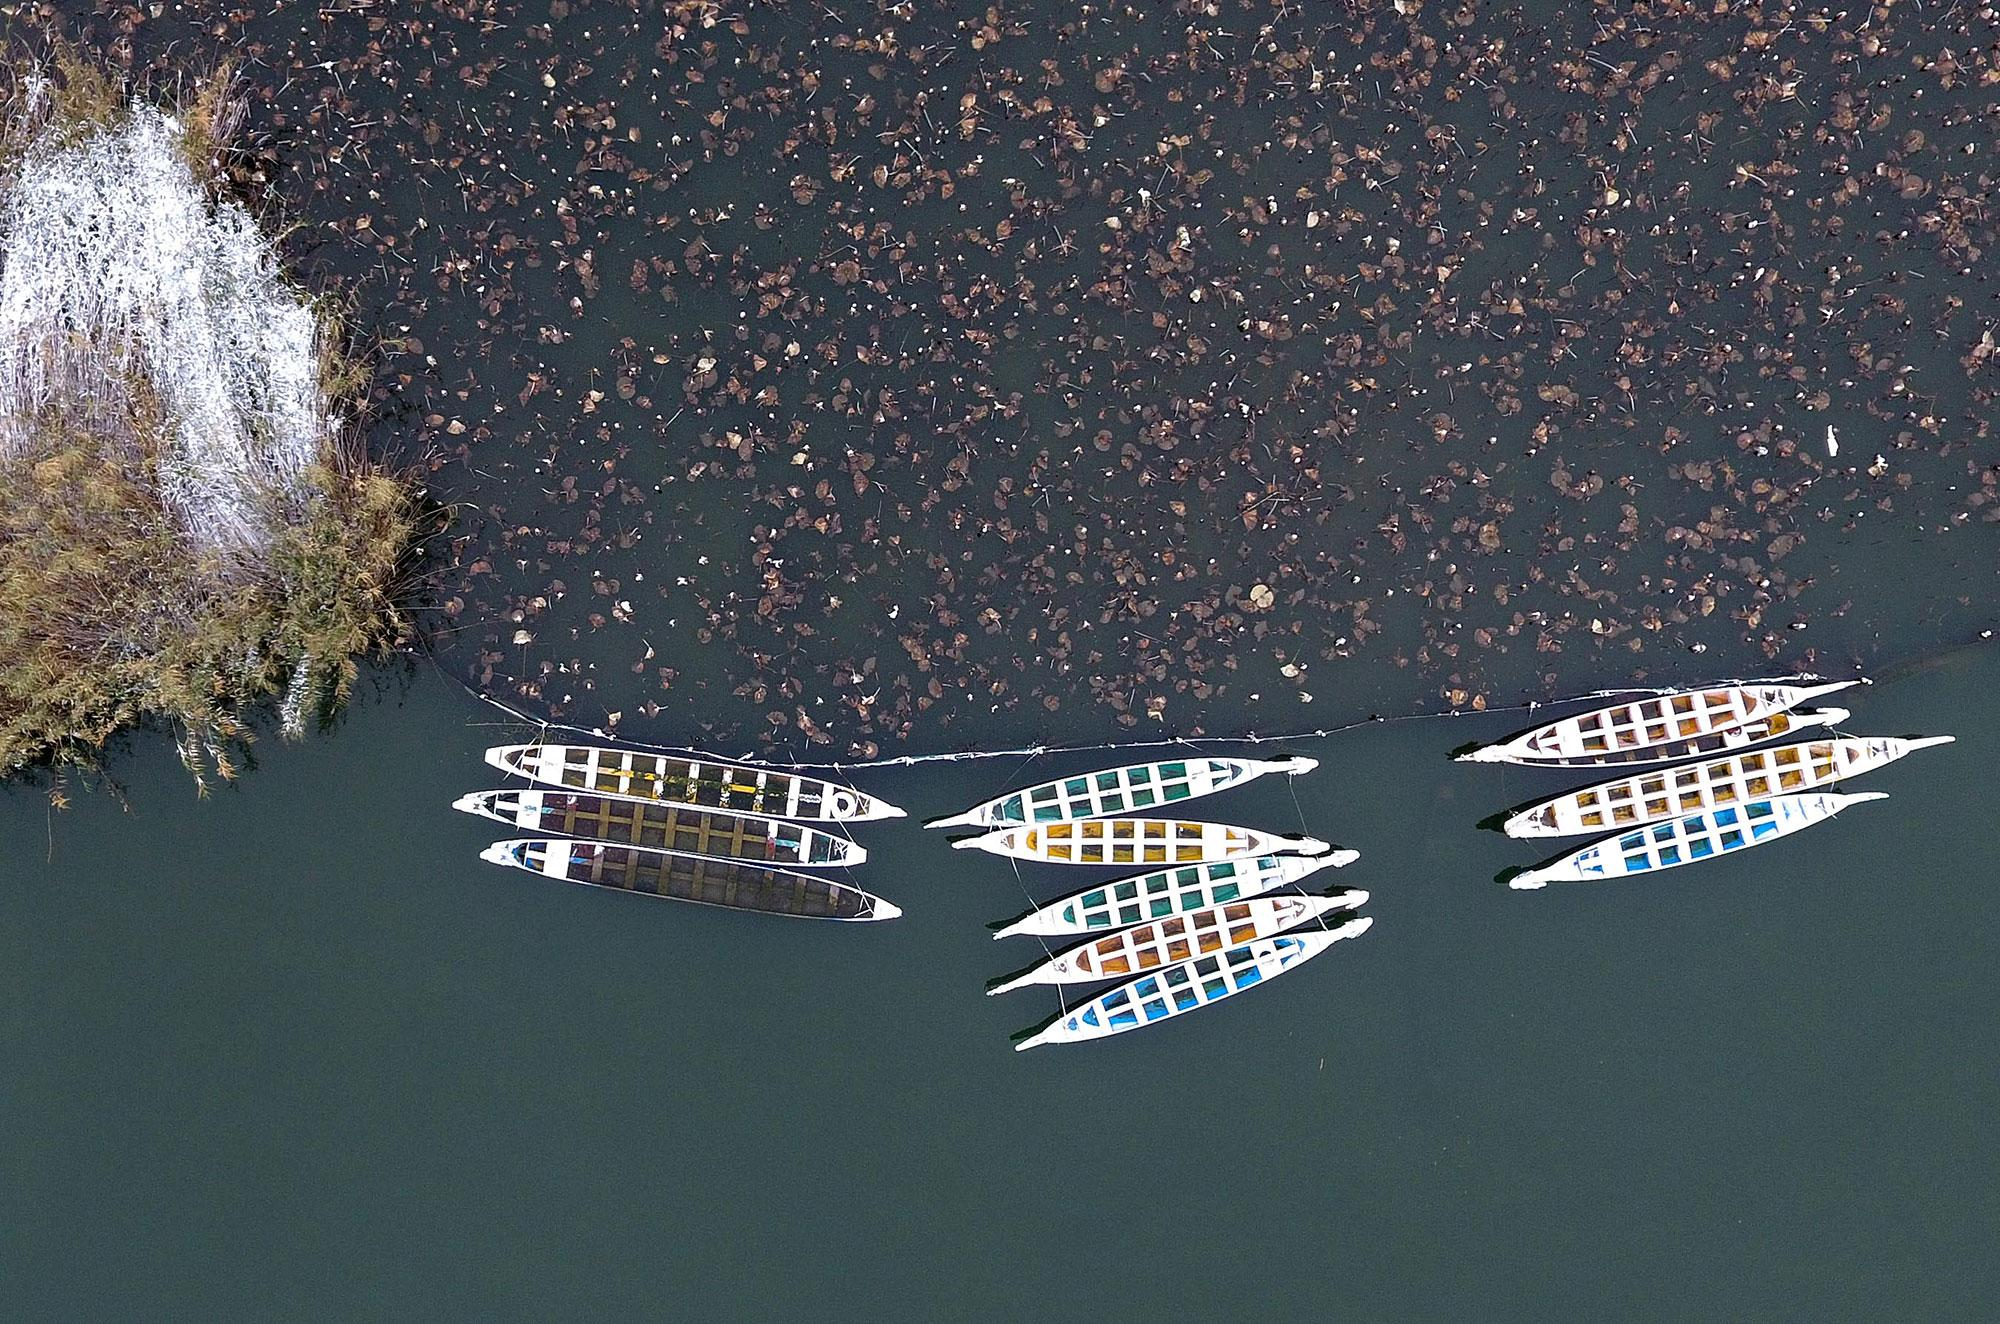 <p>Boats are seen on the Daming Lake after a light snow in Jinan, capital of east China's Shandong Province on Nov. 22, 2016. (Xu Suhui/Xinhua via ZUMA Wire) </p>